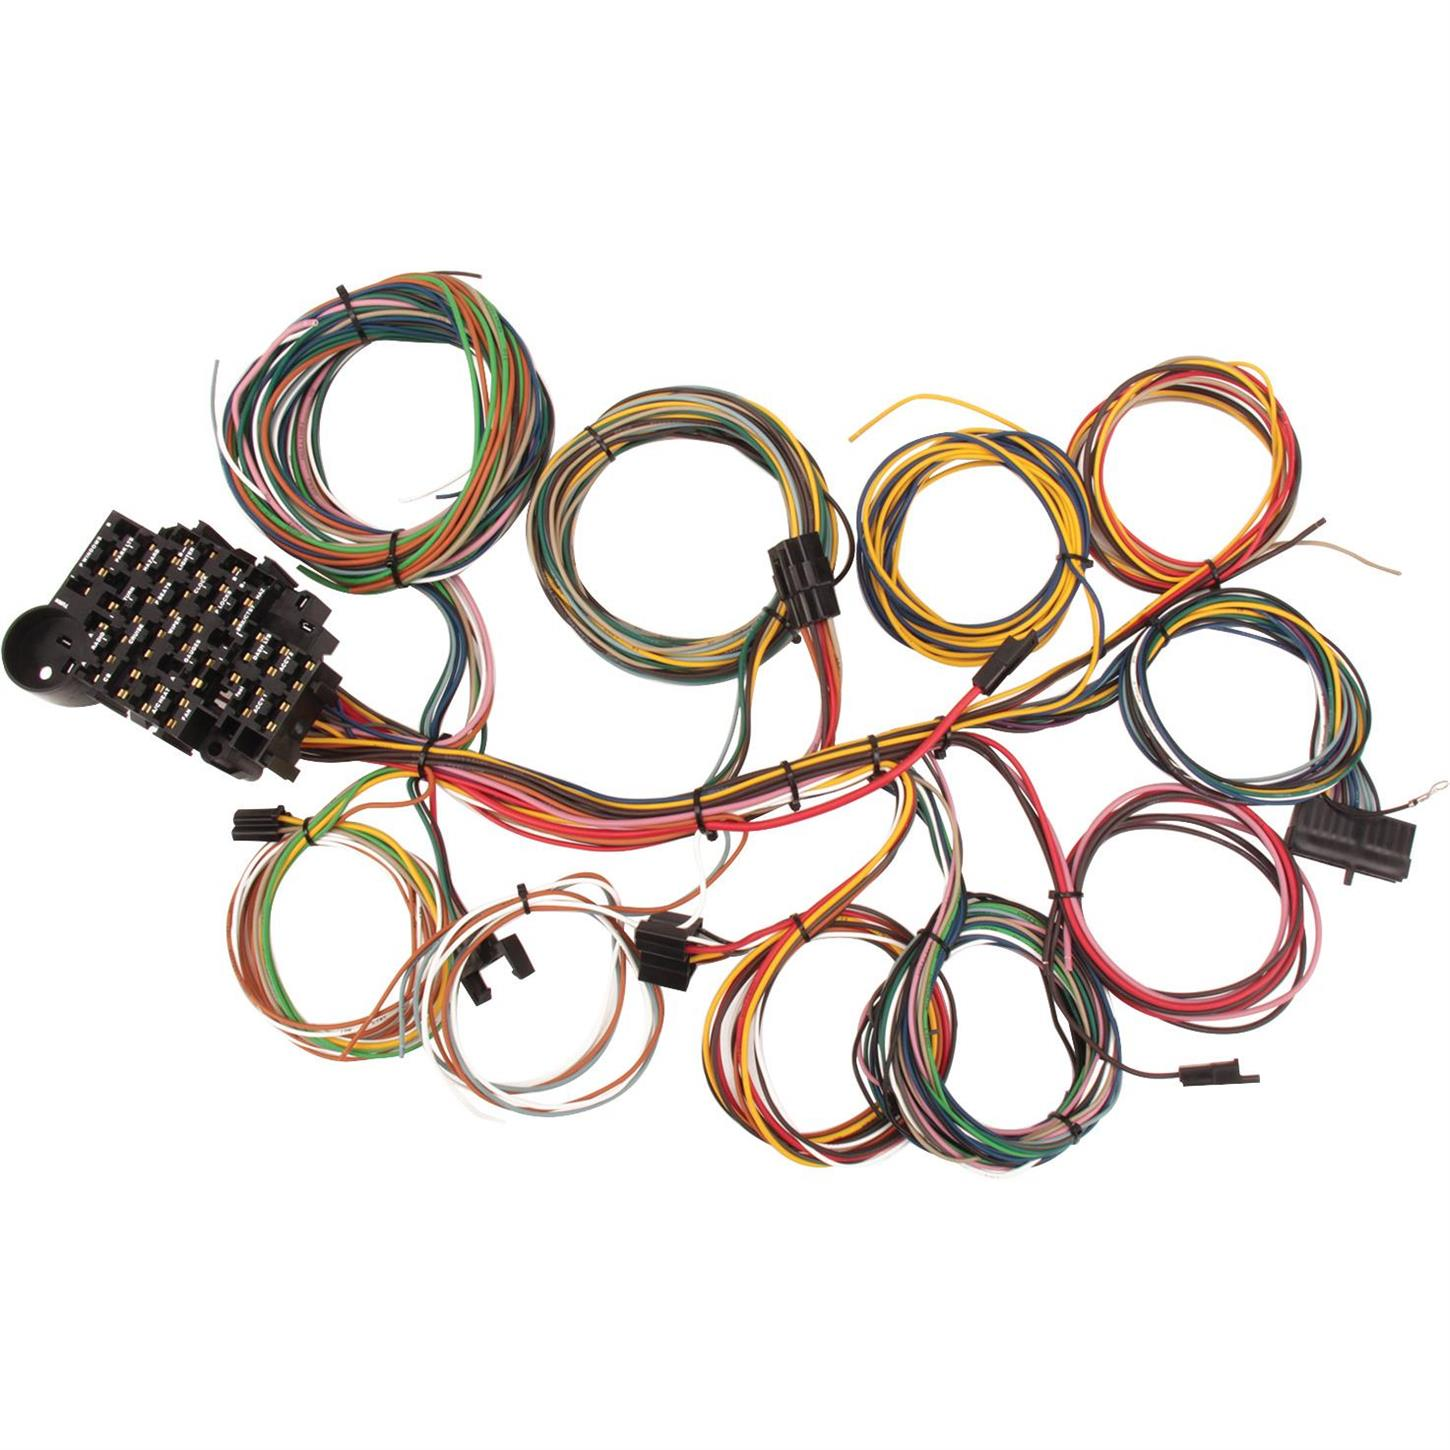 91064022_L1450_4a5a9e43 cdd2 4b2c 9c68 457f296054bd selecting a wiring harness for your street rod  at metegol.co